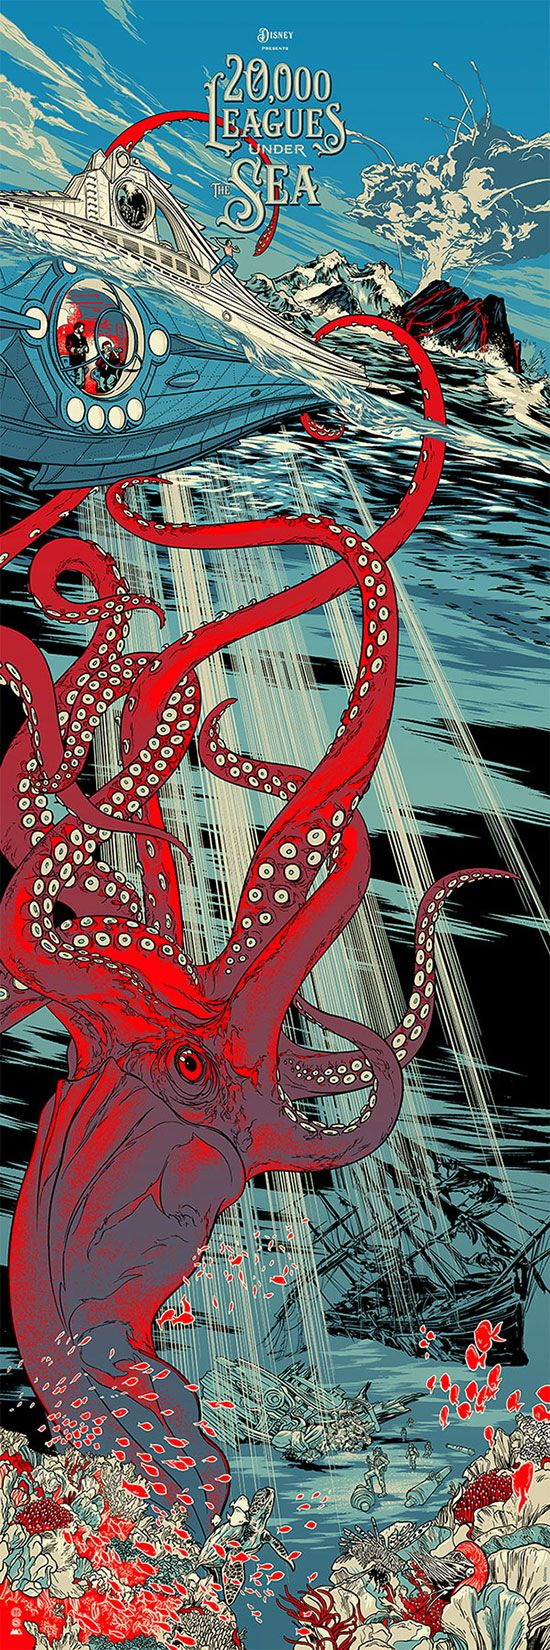 20,000 Leagues Under the Sea, by Martin Ansin #martinansin #20000leaguesundertheseaprint